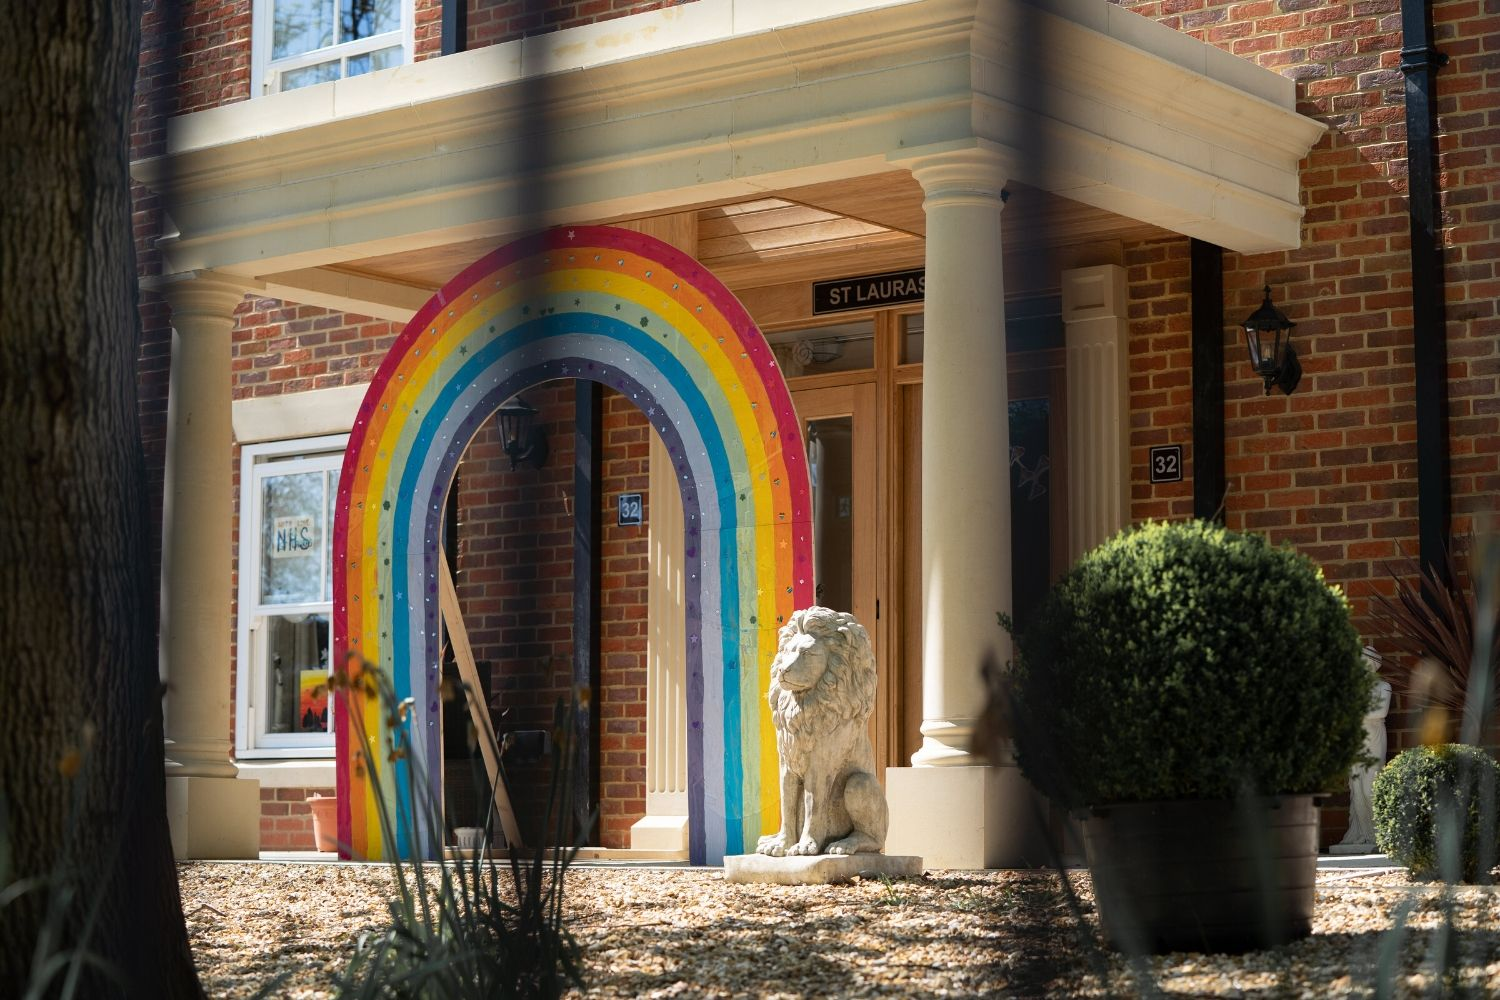 Rainbow in entrance of house